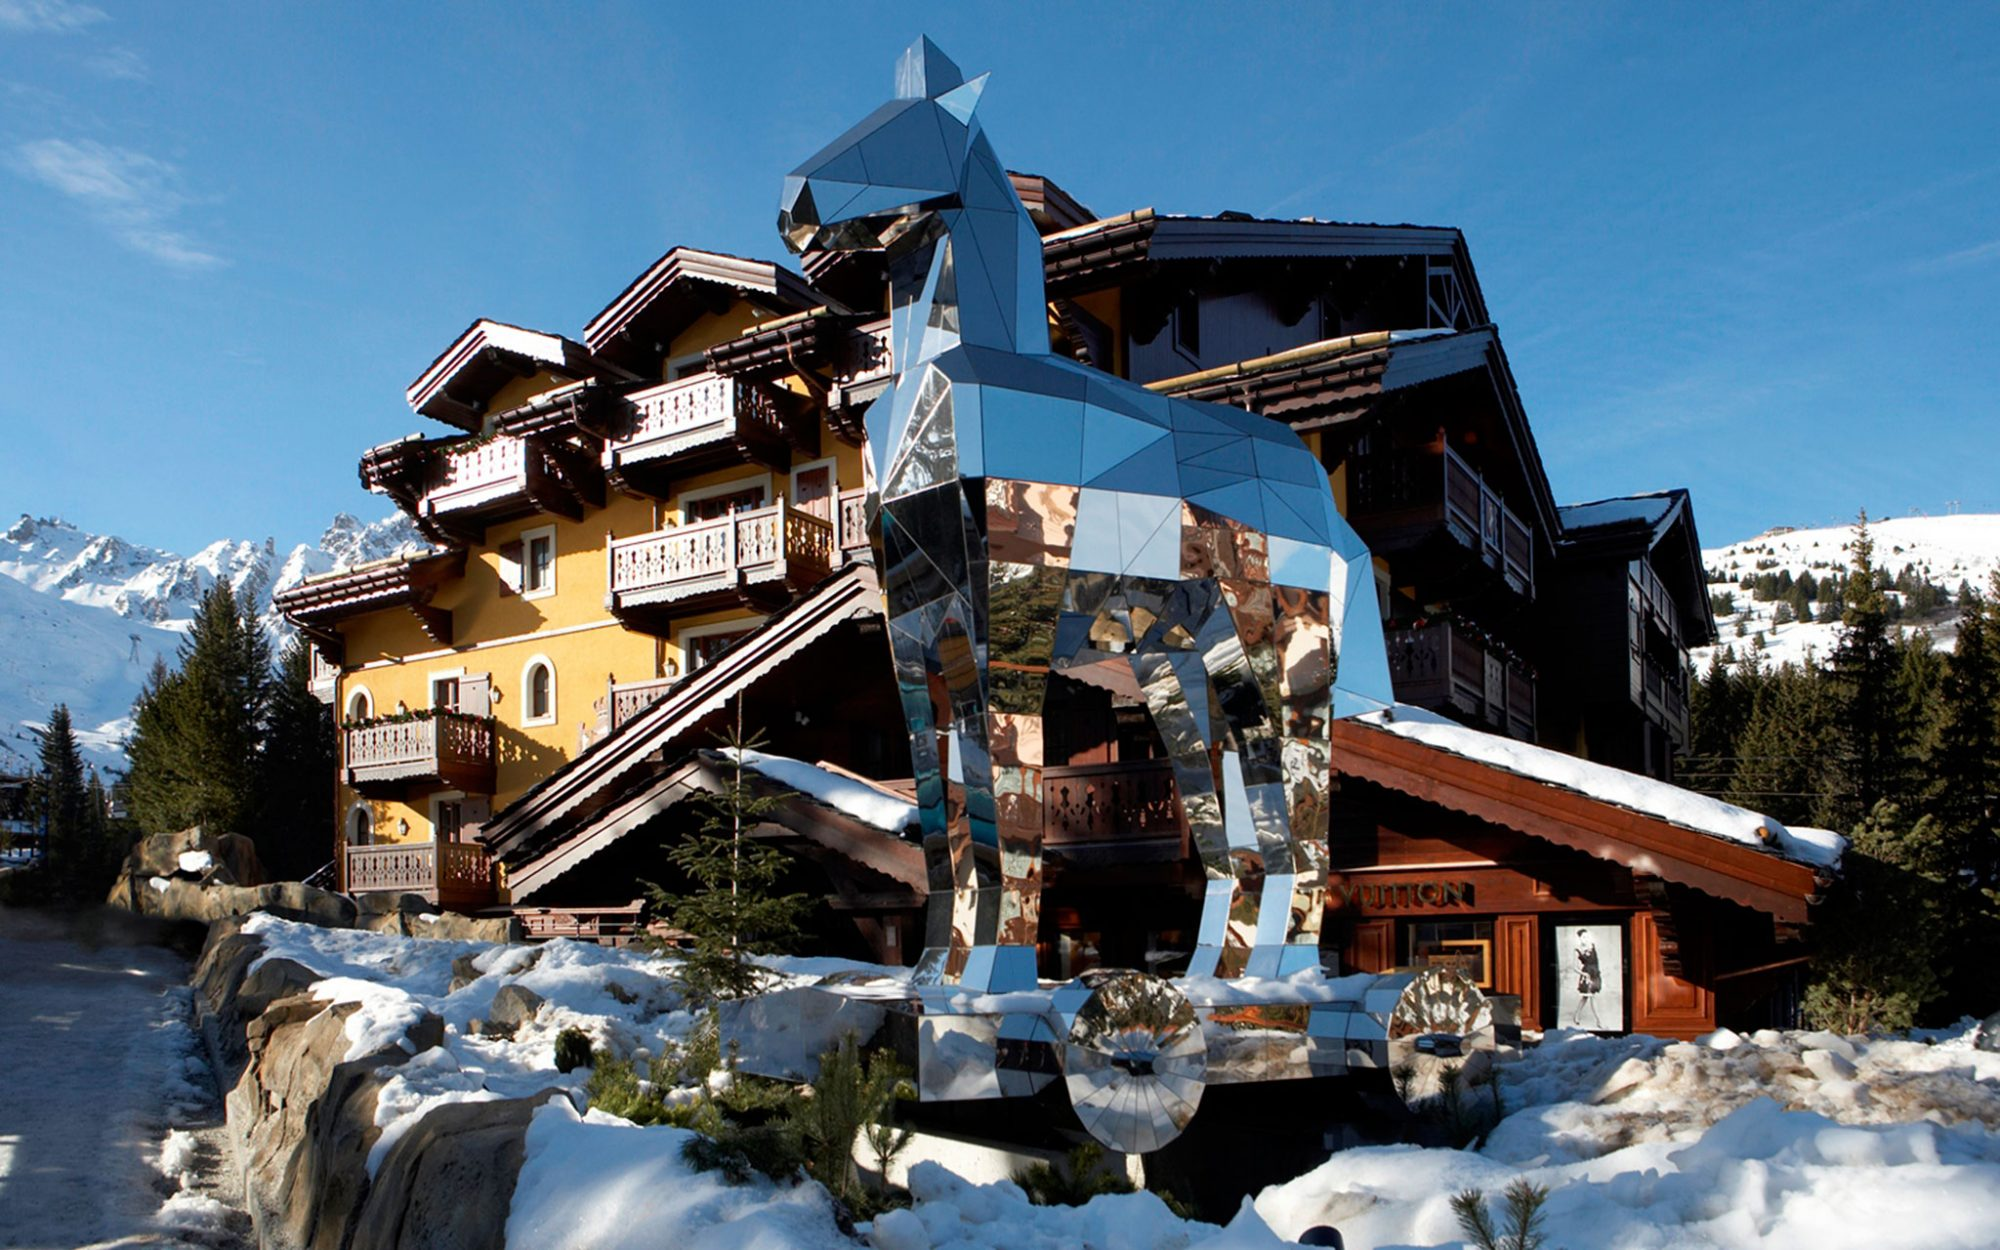 Europe's Best Winter Getaways: Courchevel, France